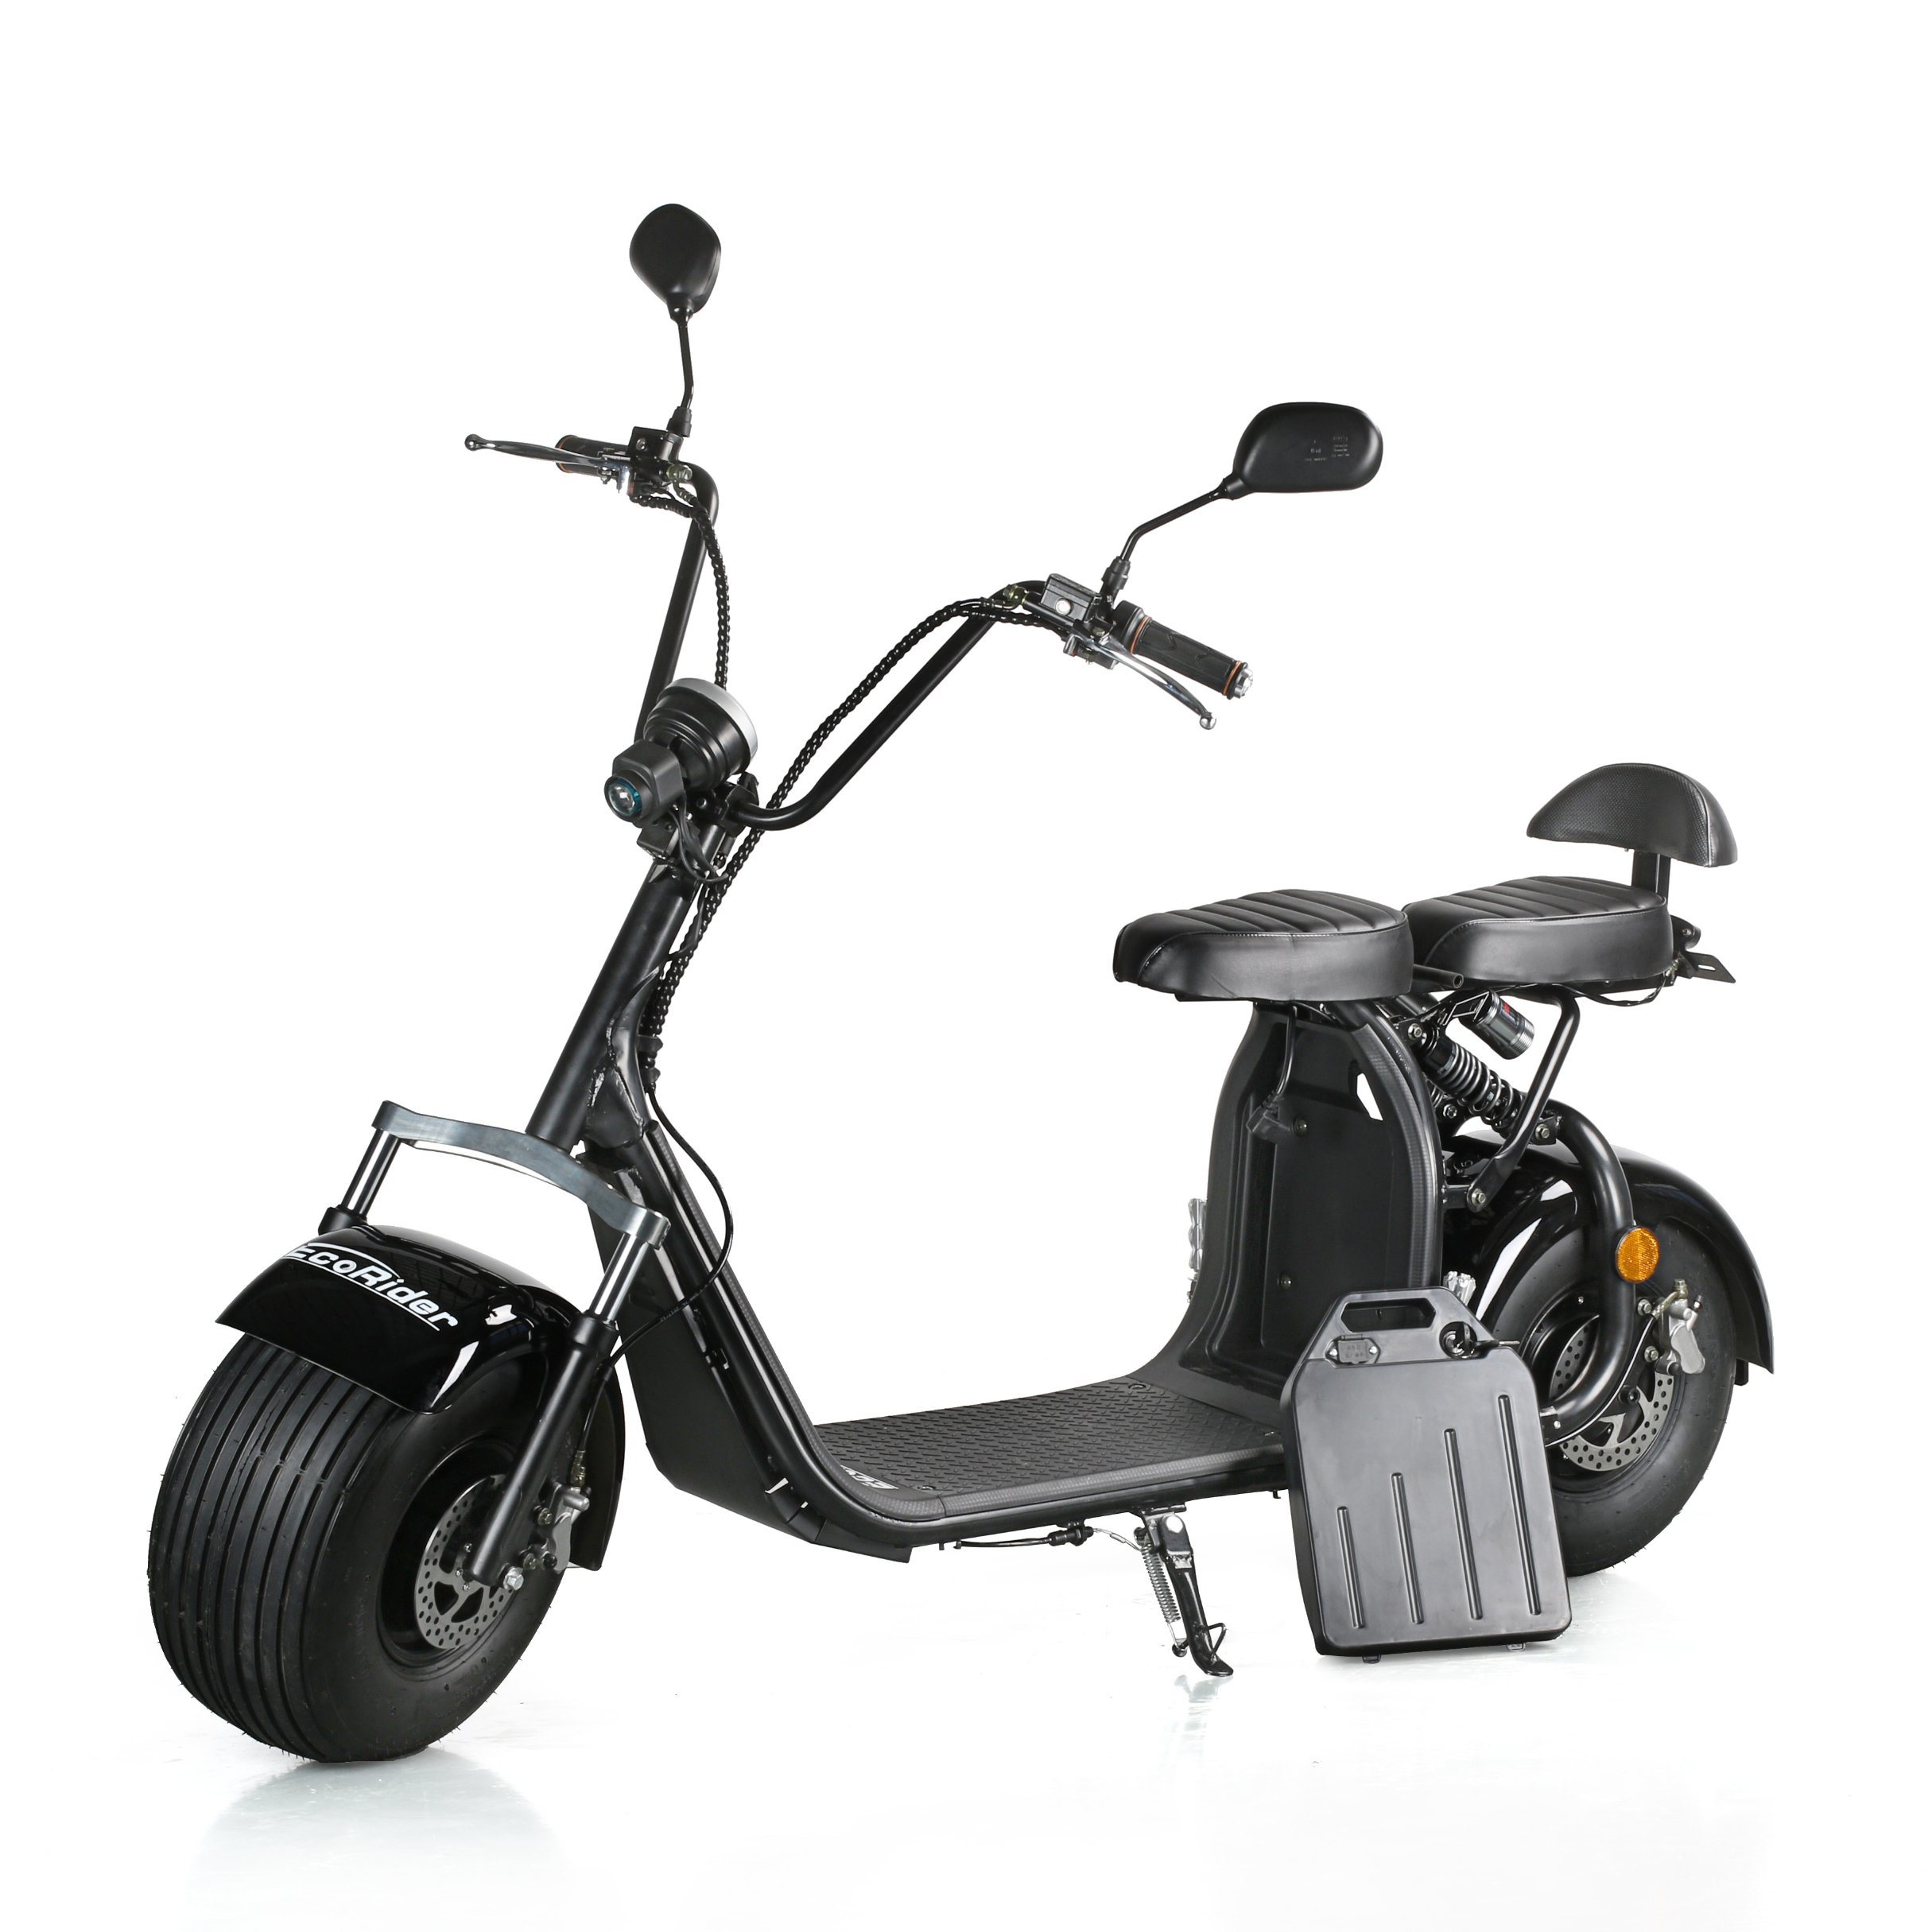 China Eec Roved Electric Scooter Two Wheel With 2 Seat